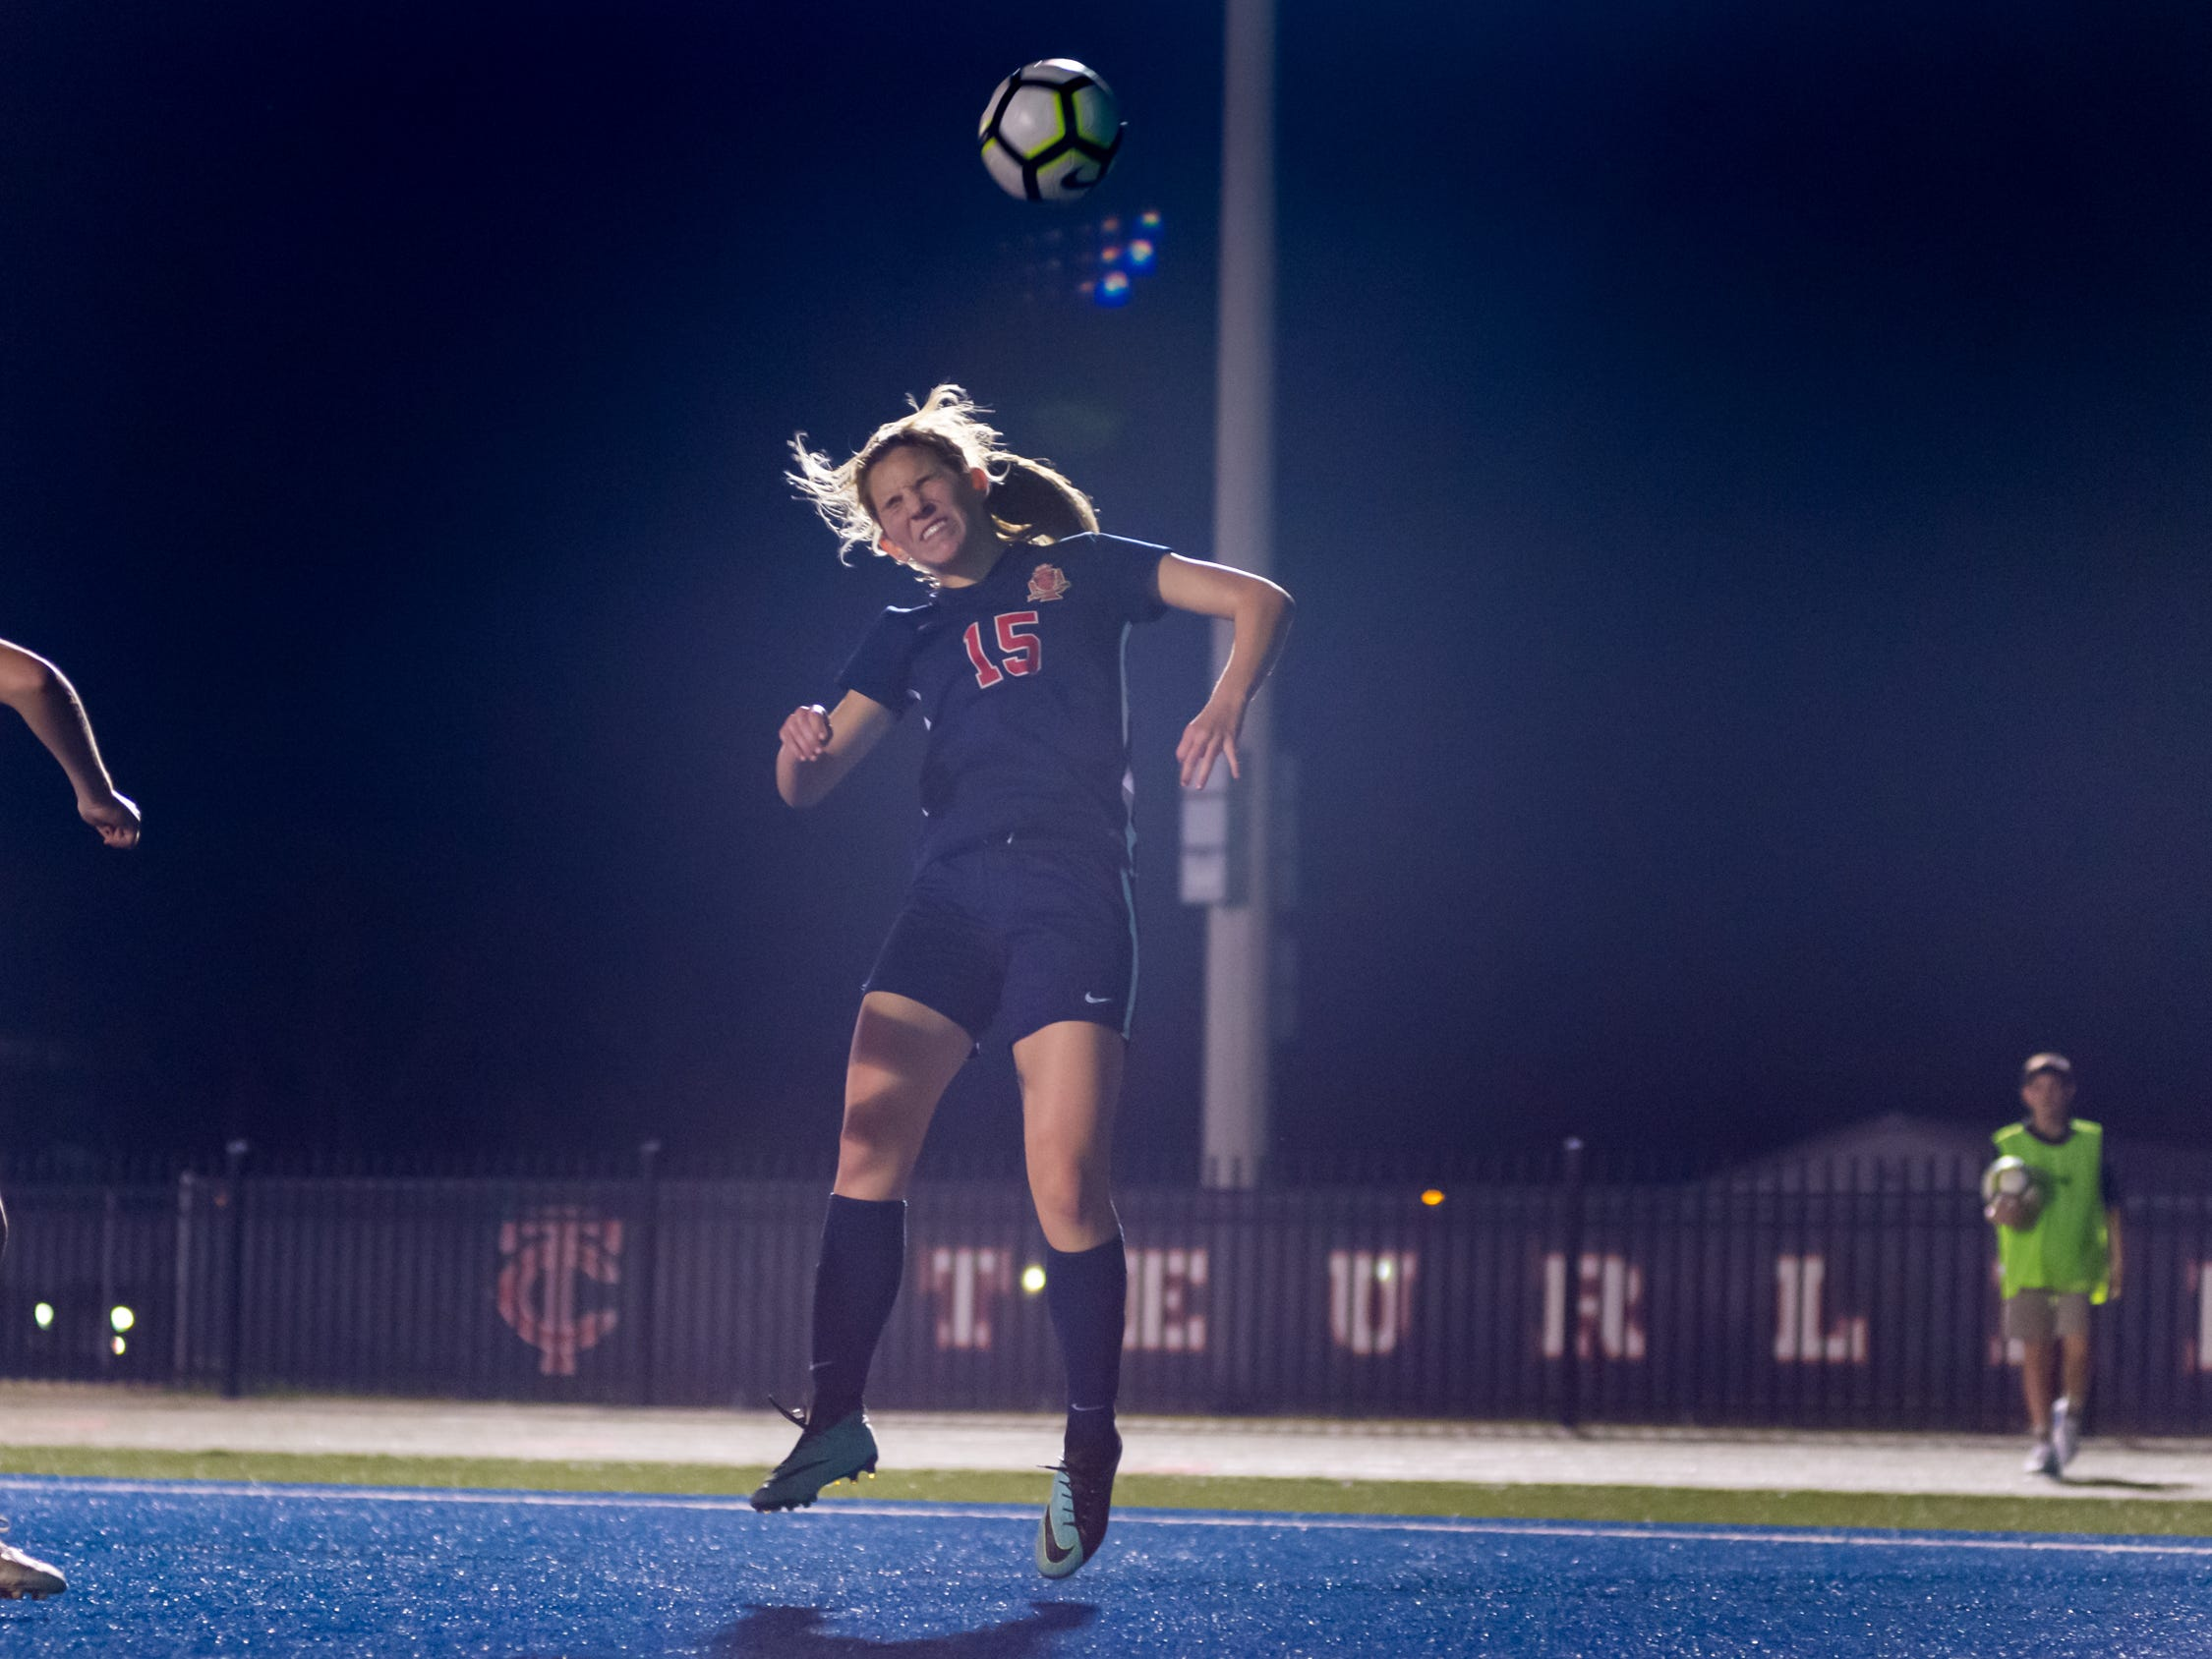 Claire Savoie header as Teurlings Catholic shuts out Lutcher 8-0 in the second round of the LHSAA soccer playoffs.  Tuesday, Feb. 5, 2019.